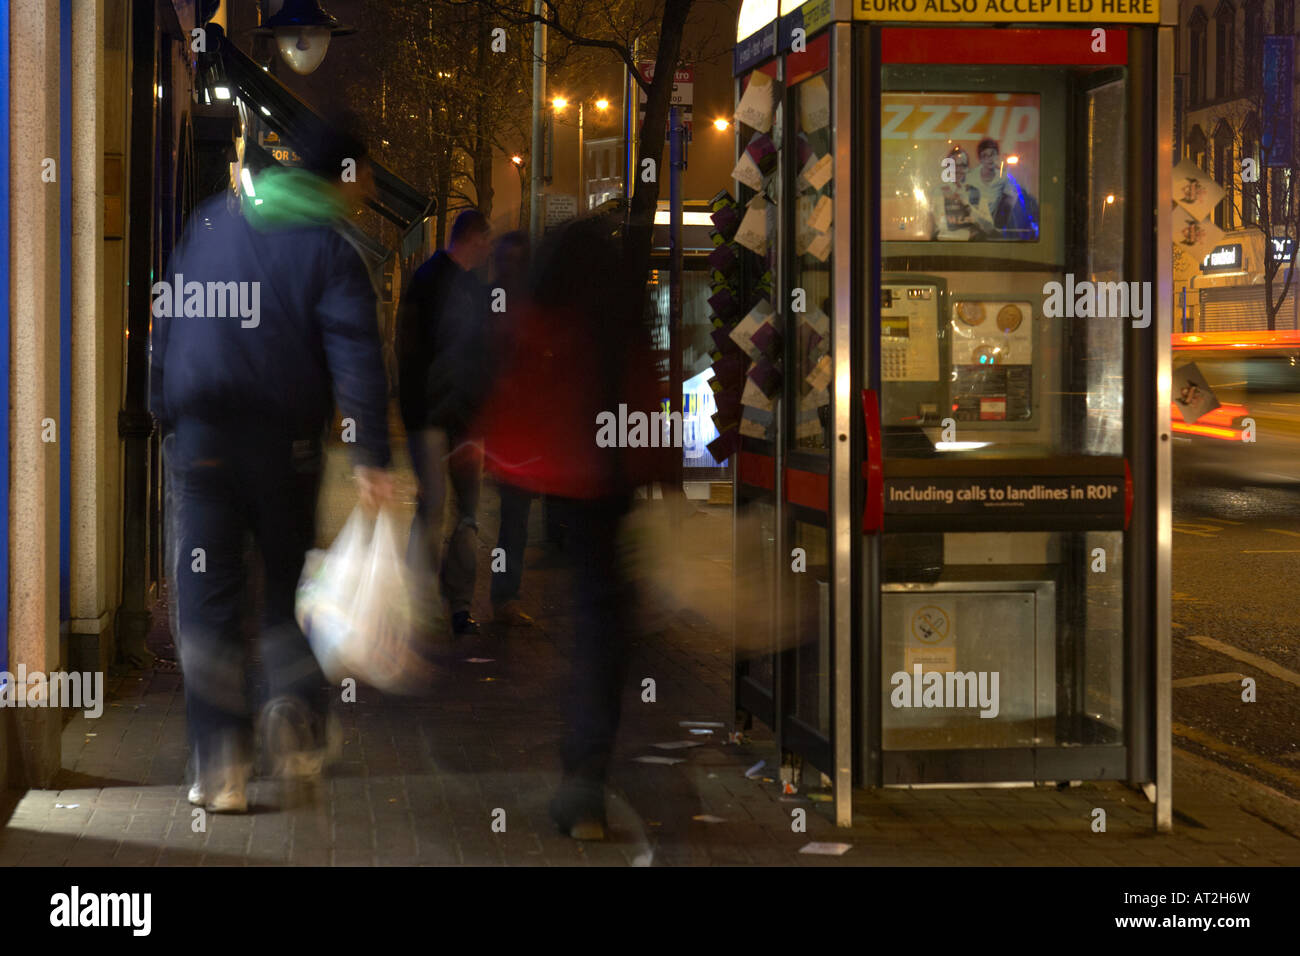 young man carrying shopping bags walk past telephone call box outside pub area bradbury place belfast - Stock Image